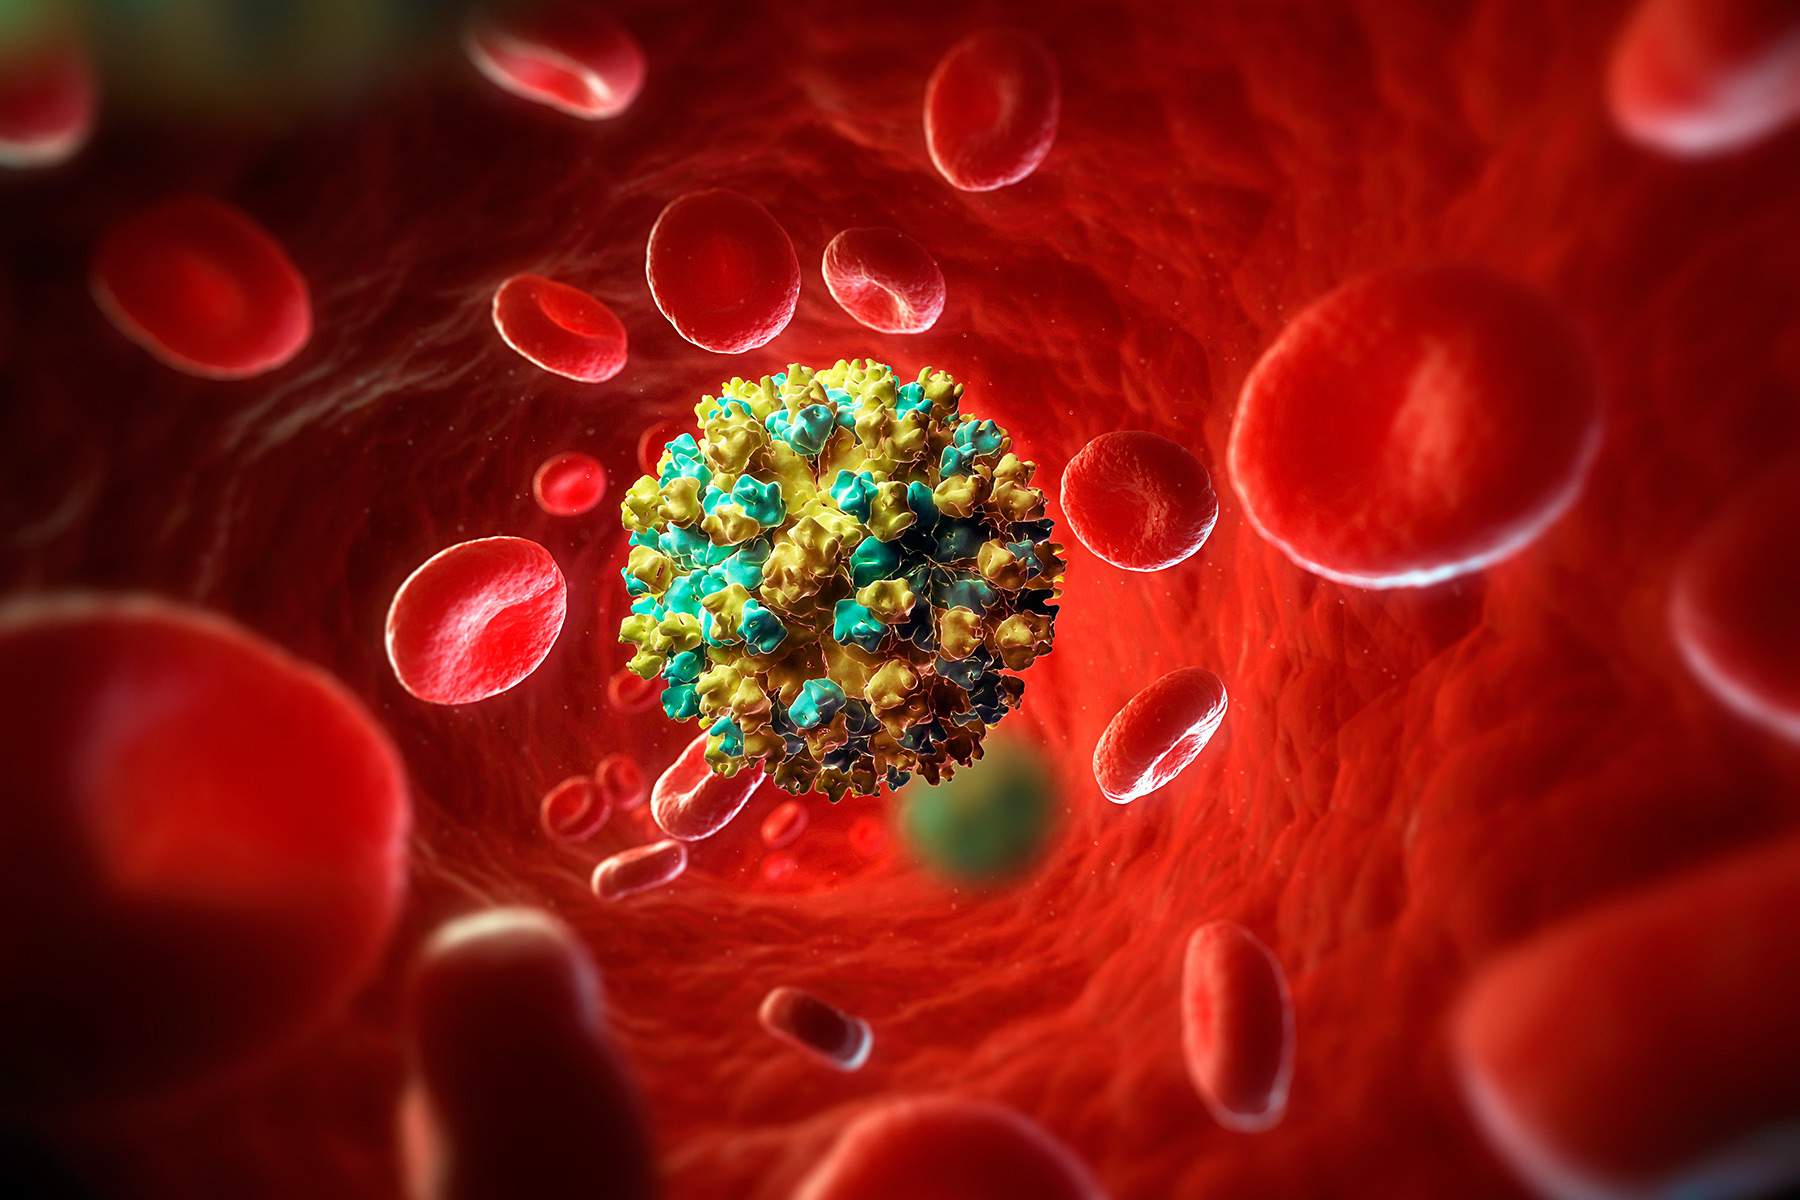 Can performance-based financing accelerate Hepatitis C treatment in Cameroon